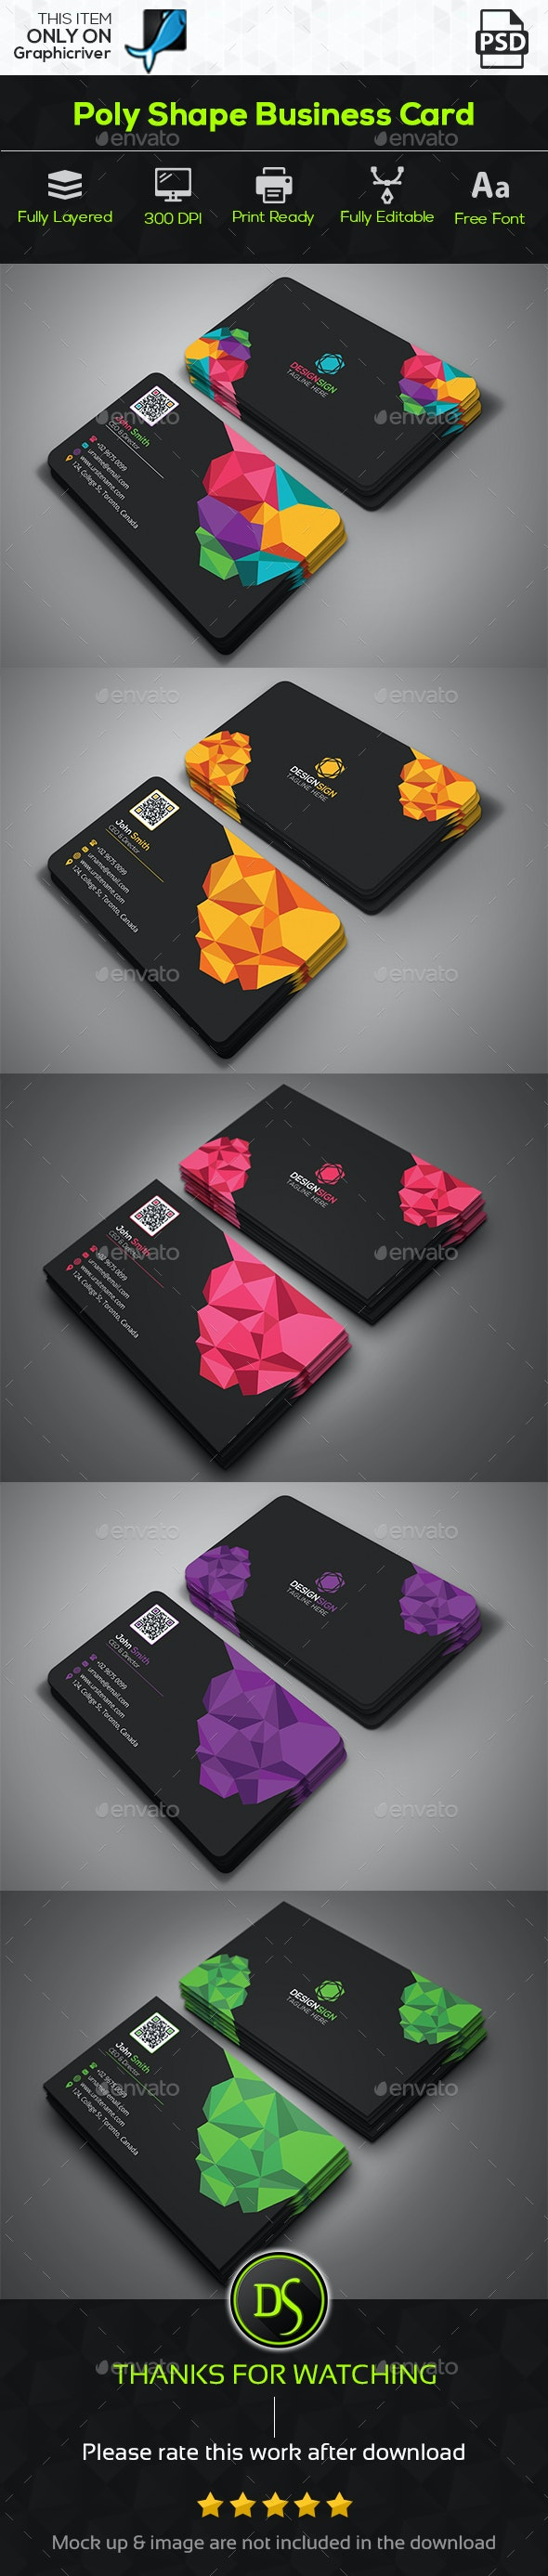 Poly Shape Business Card - Creative Business Cards